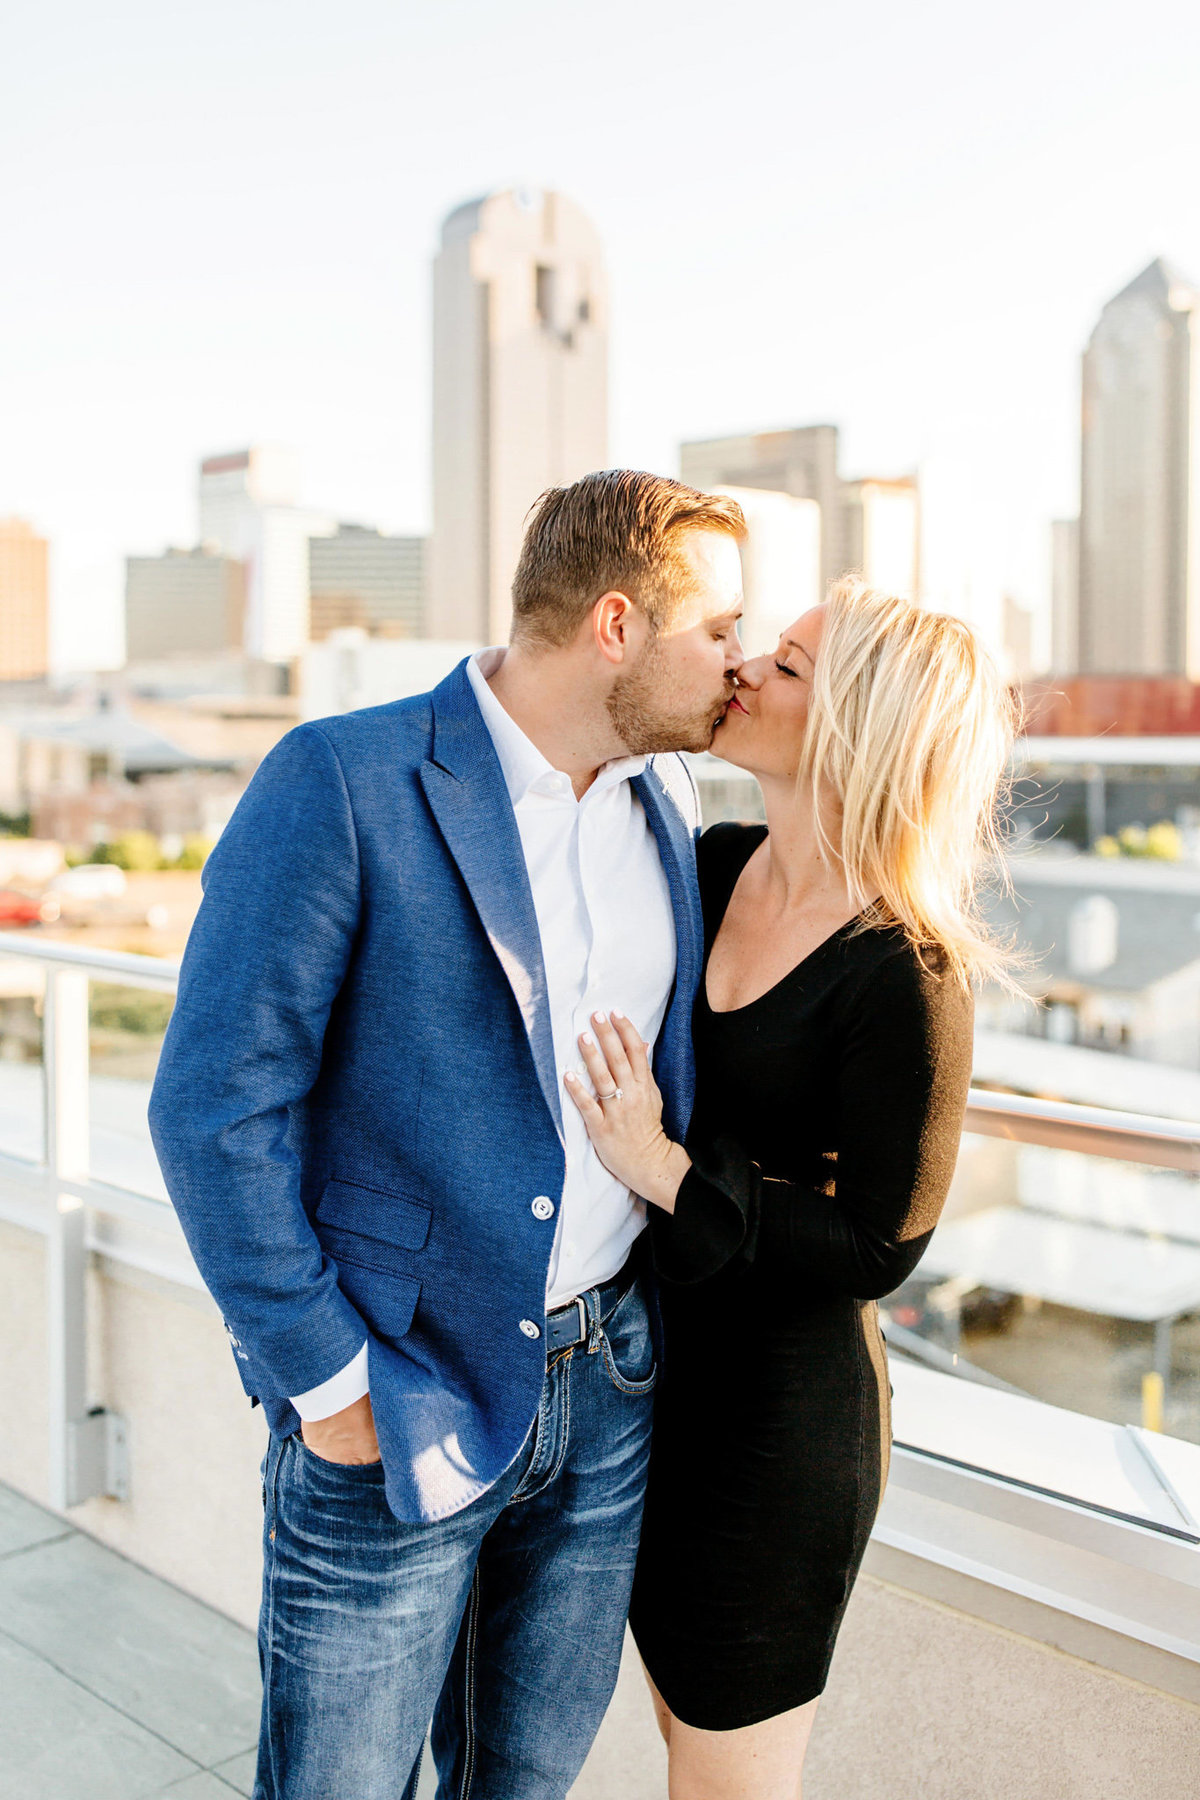 Eric & Megan - Downtown Dallas Rooftop Proposal & Engagement Session-64